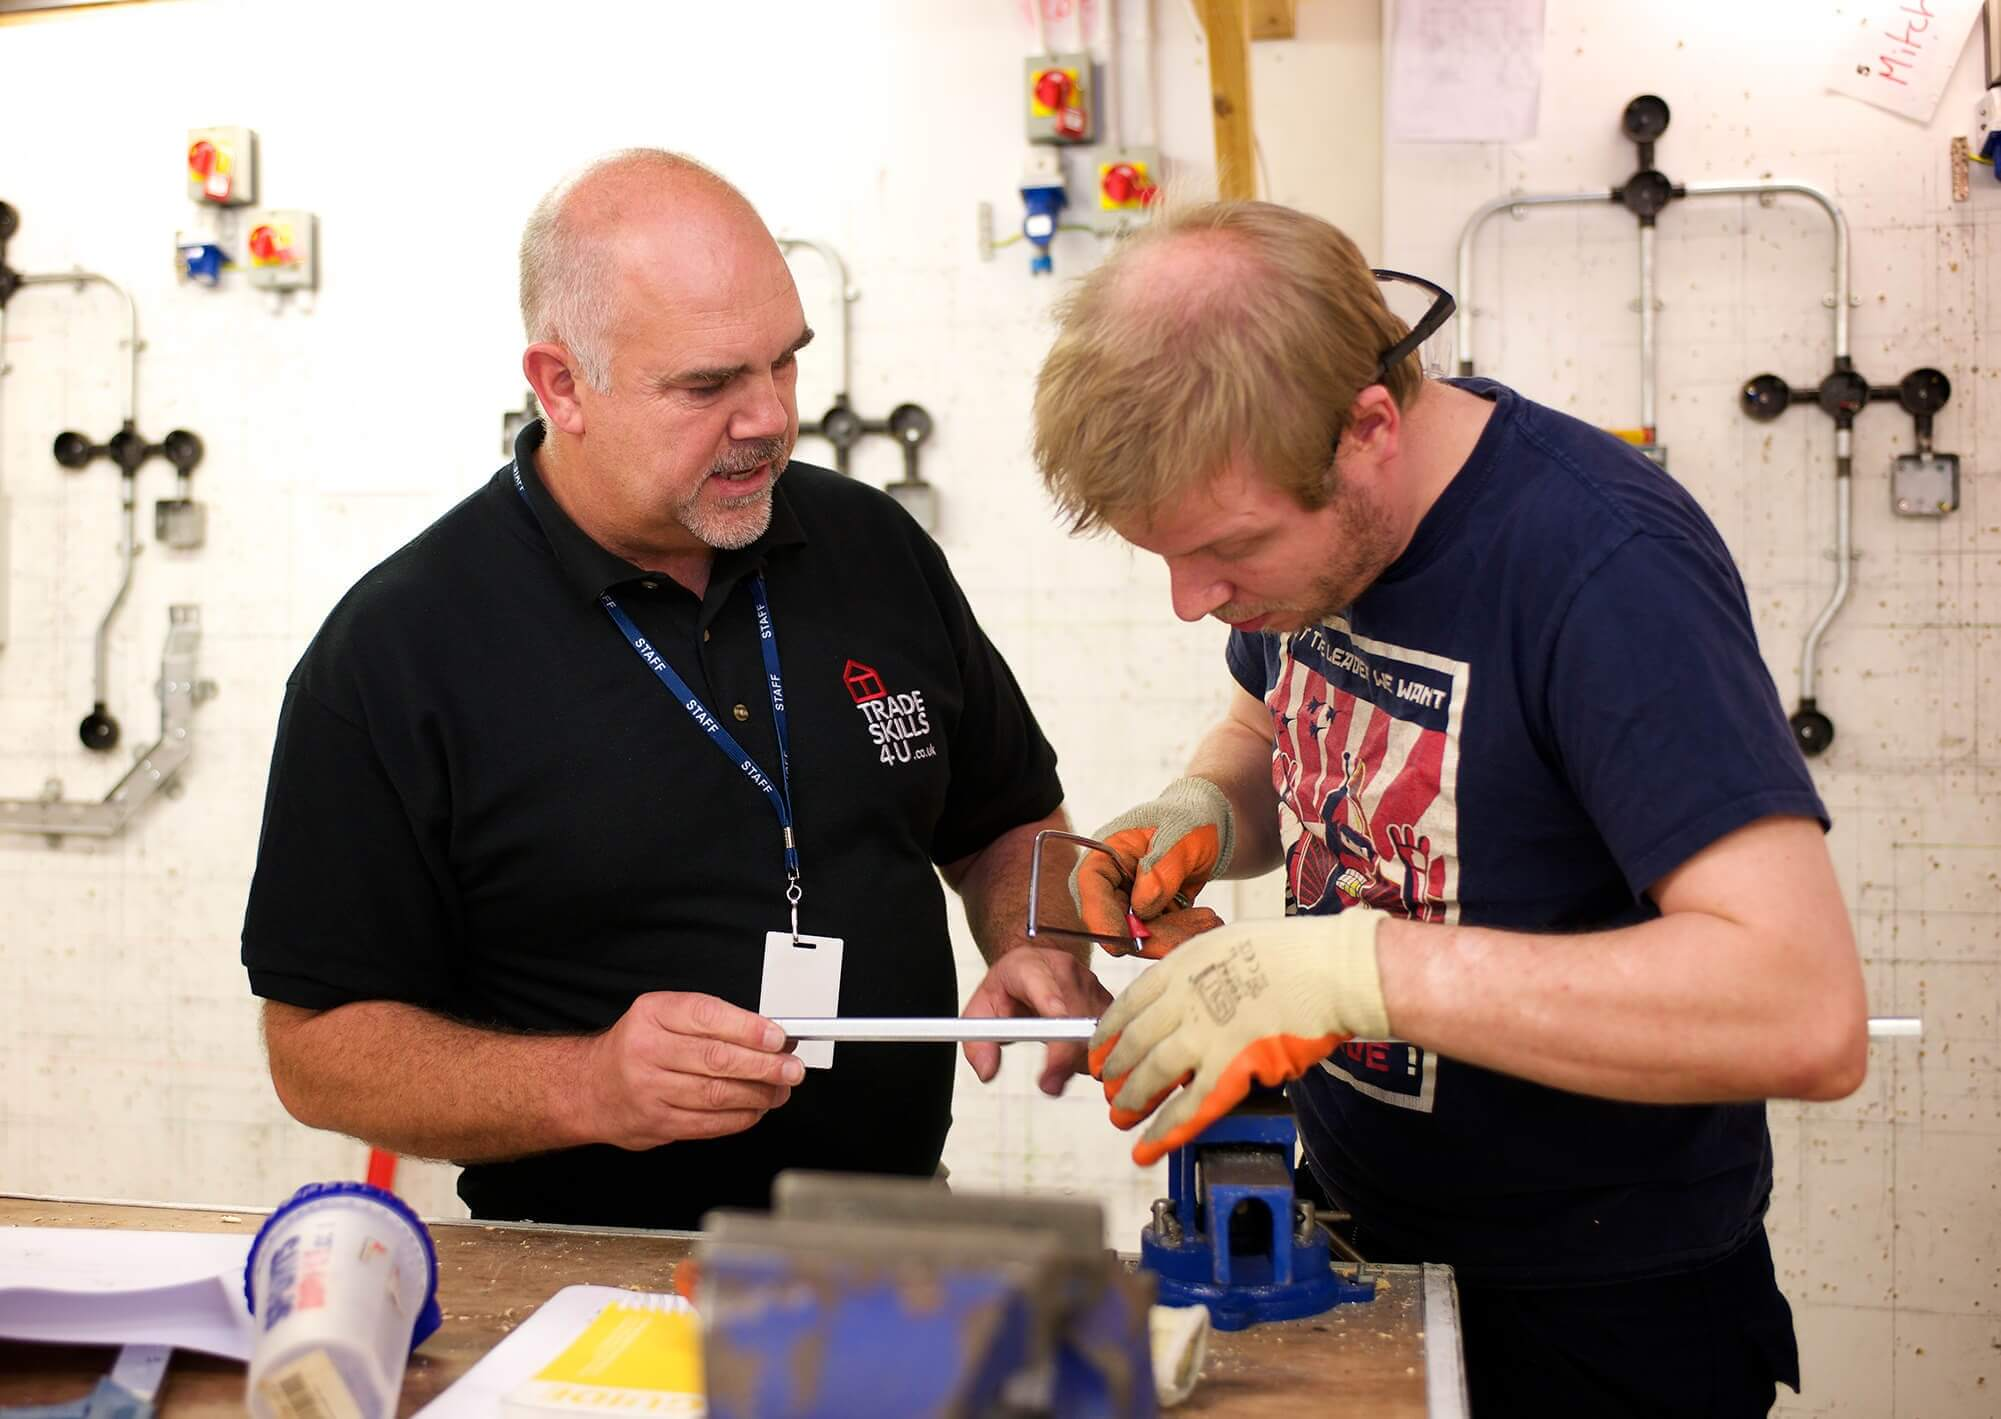 best way to become an electrician uk